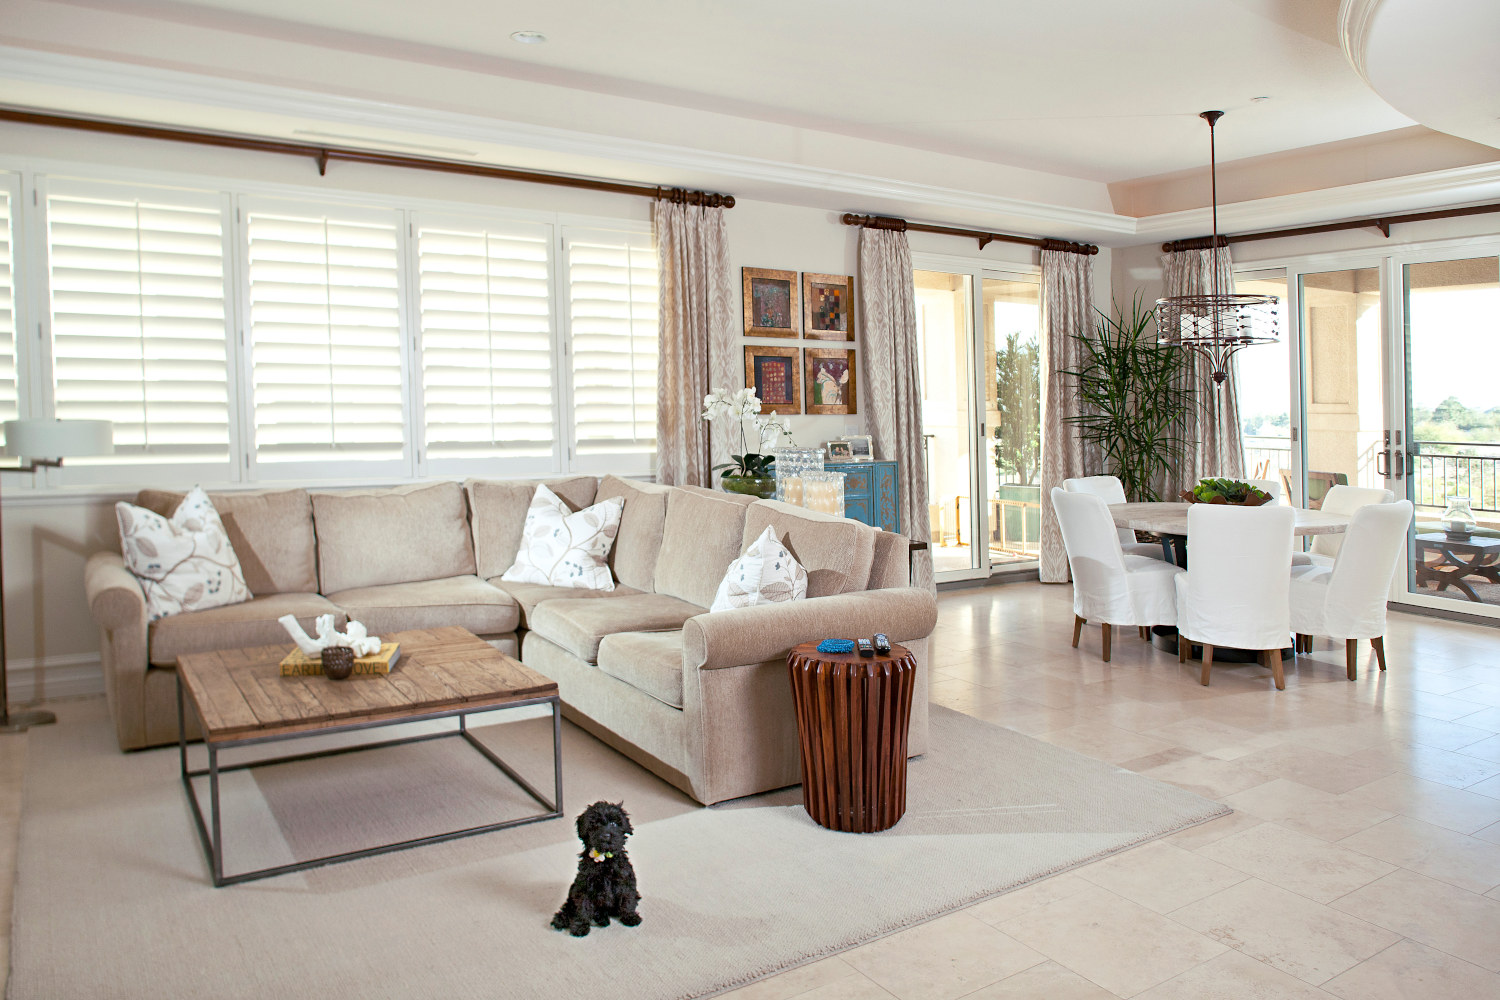 Open space bright family room and dining room combo, with cream travertine flooring.